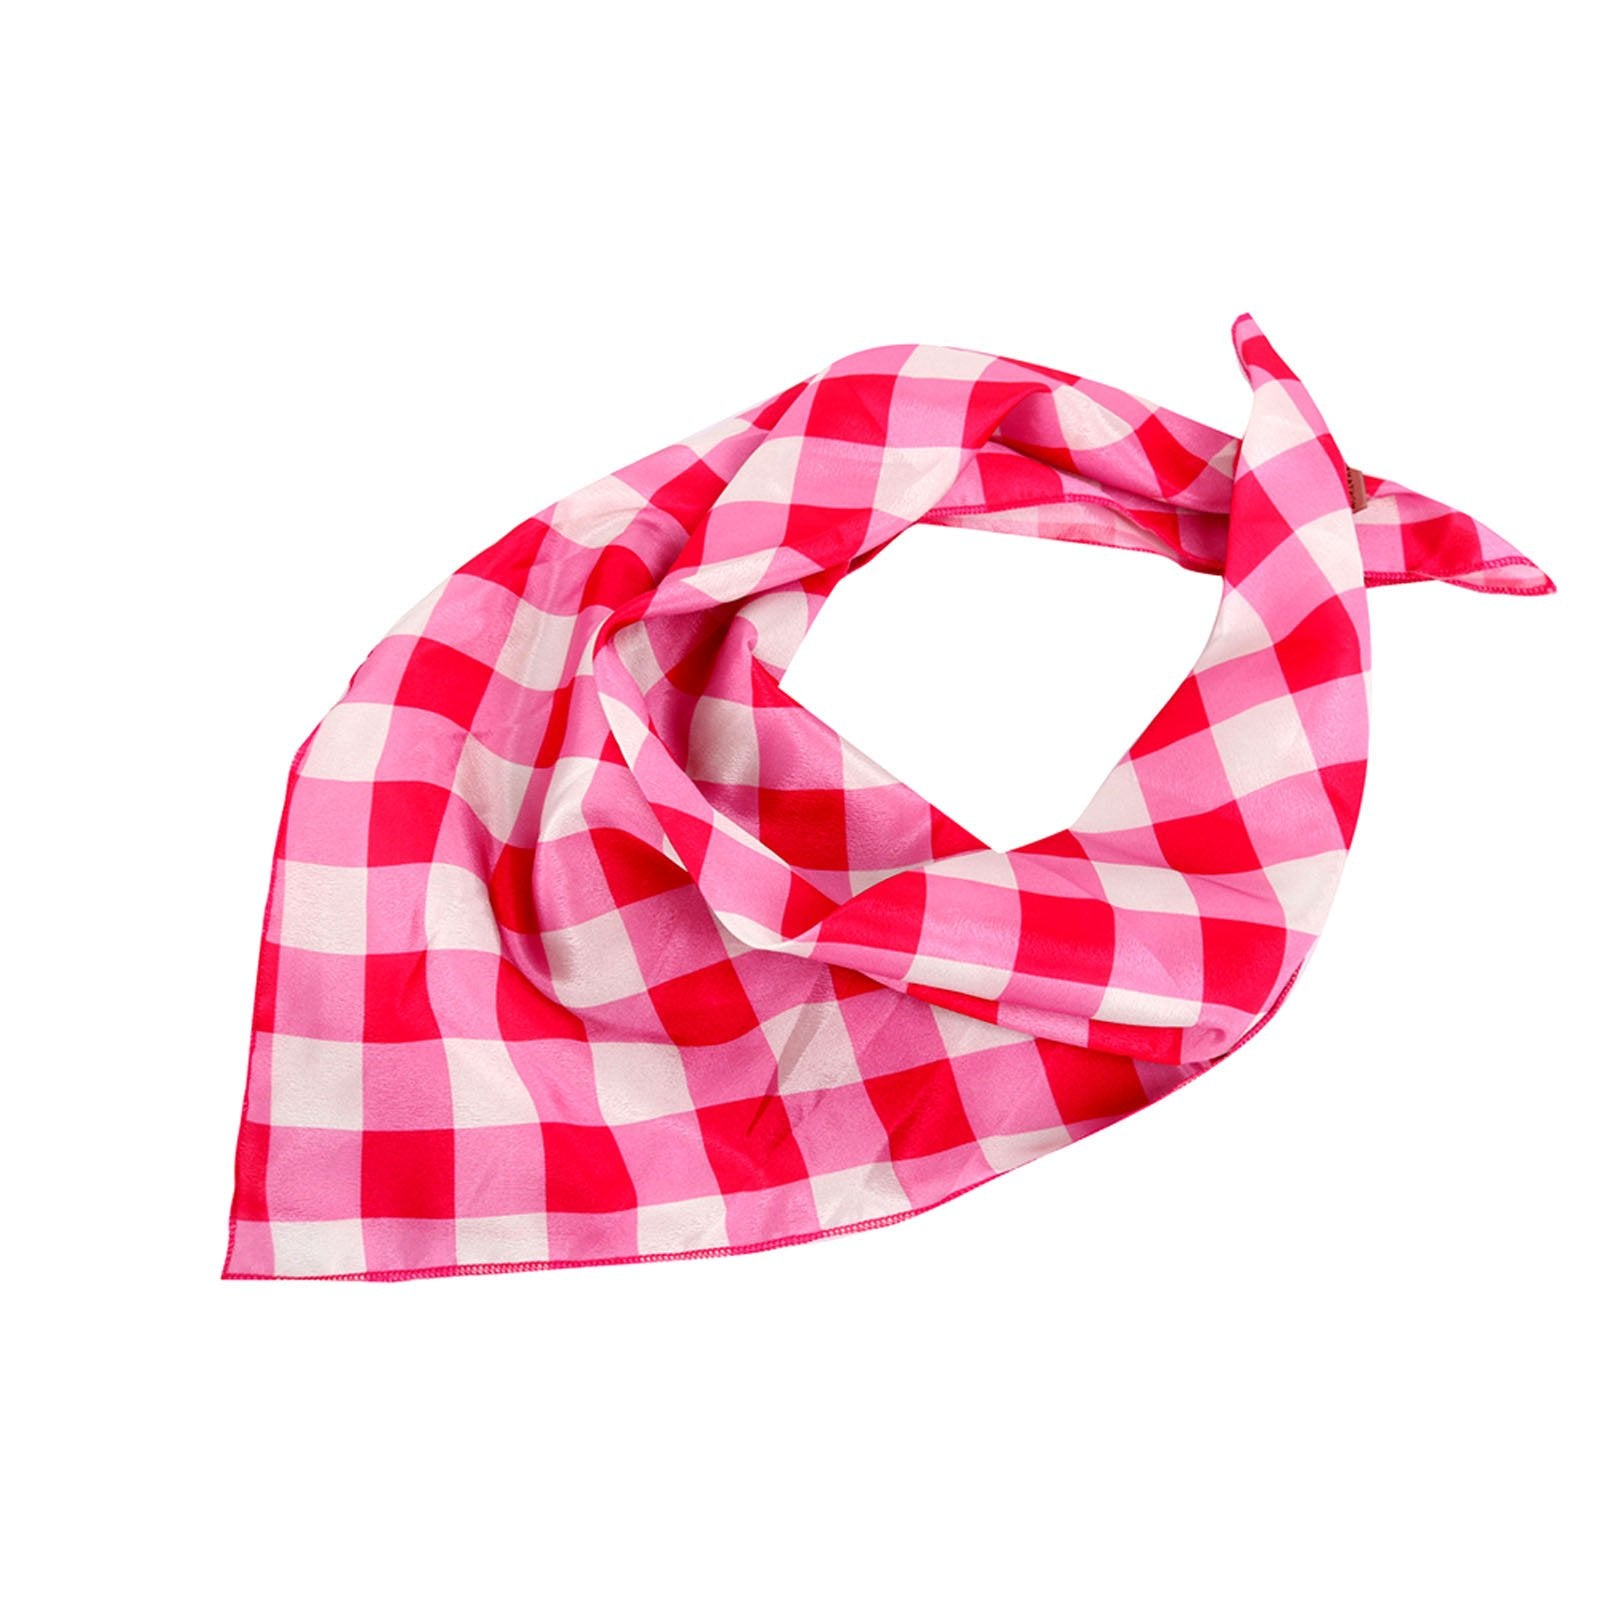 BDN11  American Bling Checkered Bandana - Assorted Colors (12 PCS)